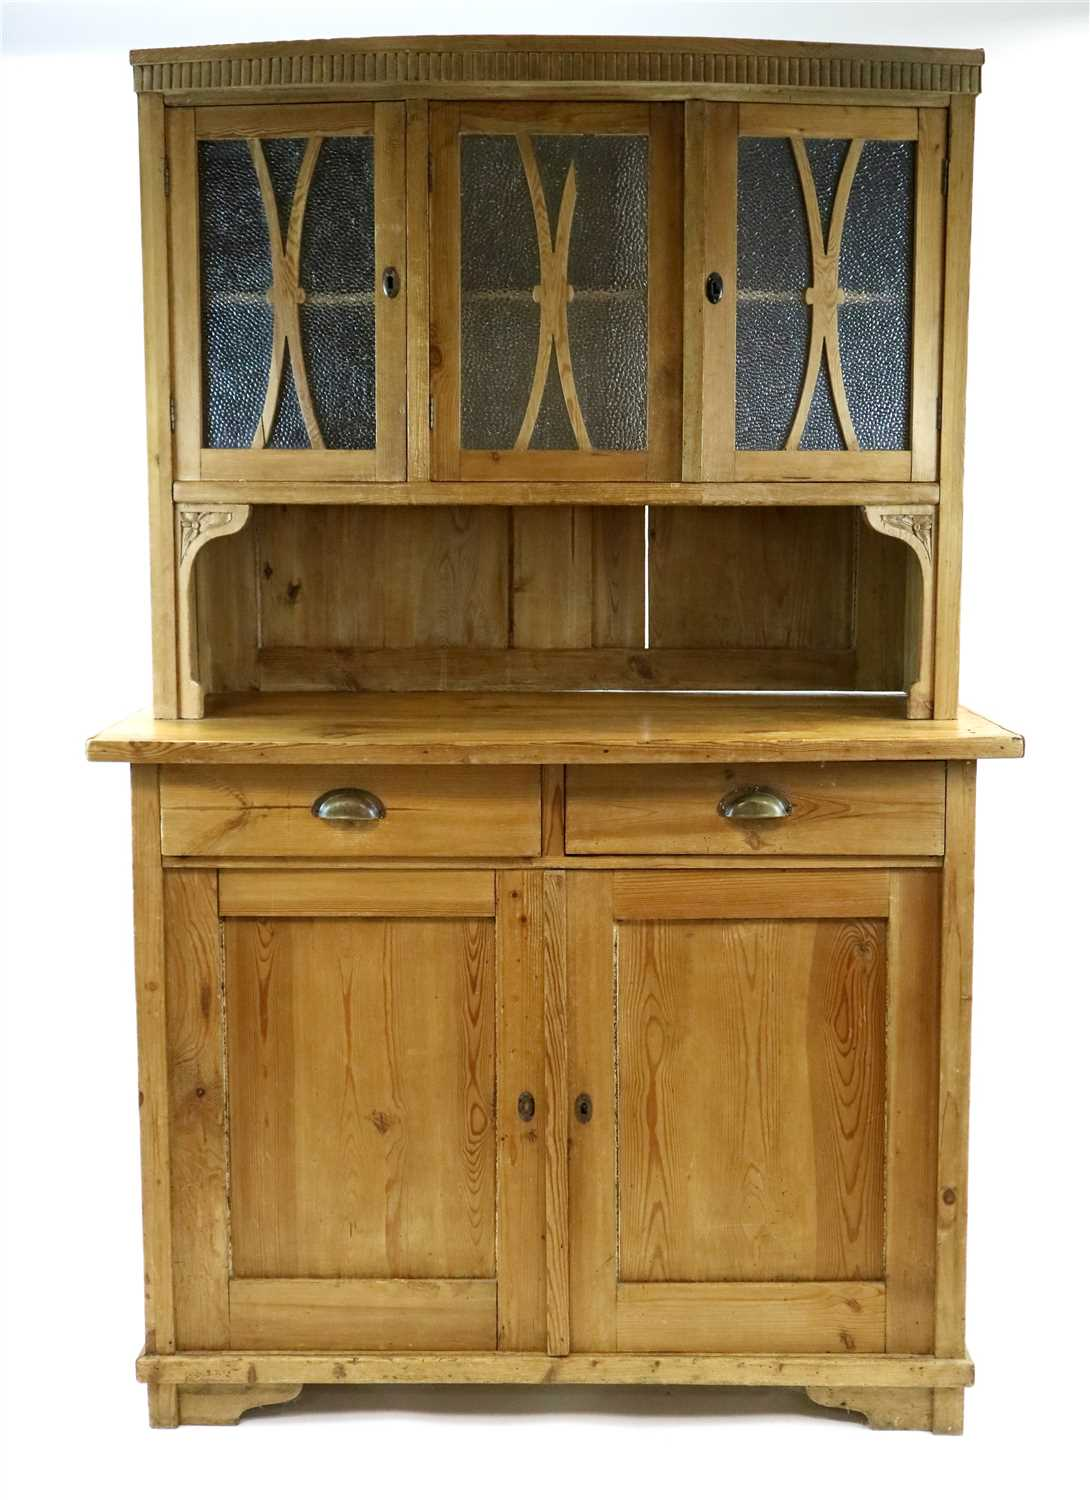 Lot 387 A Small Scrubbed Pine Kitchen Dresser With A